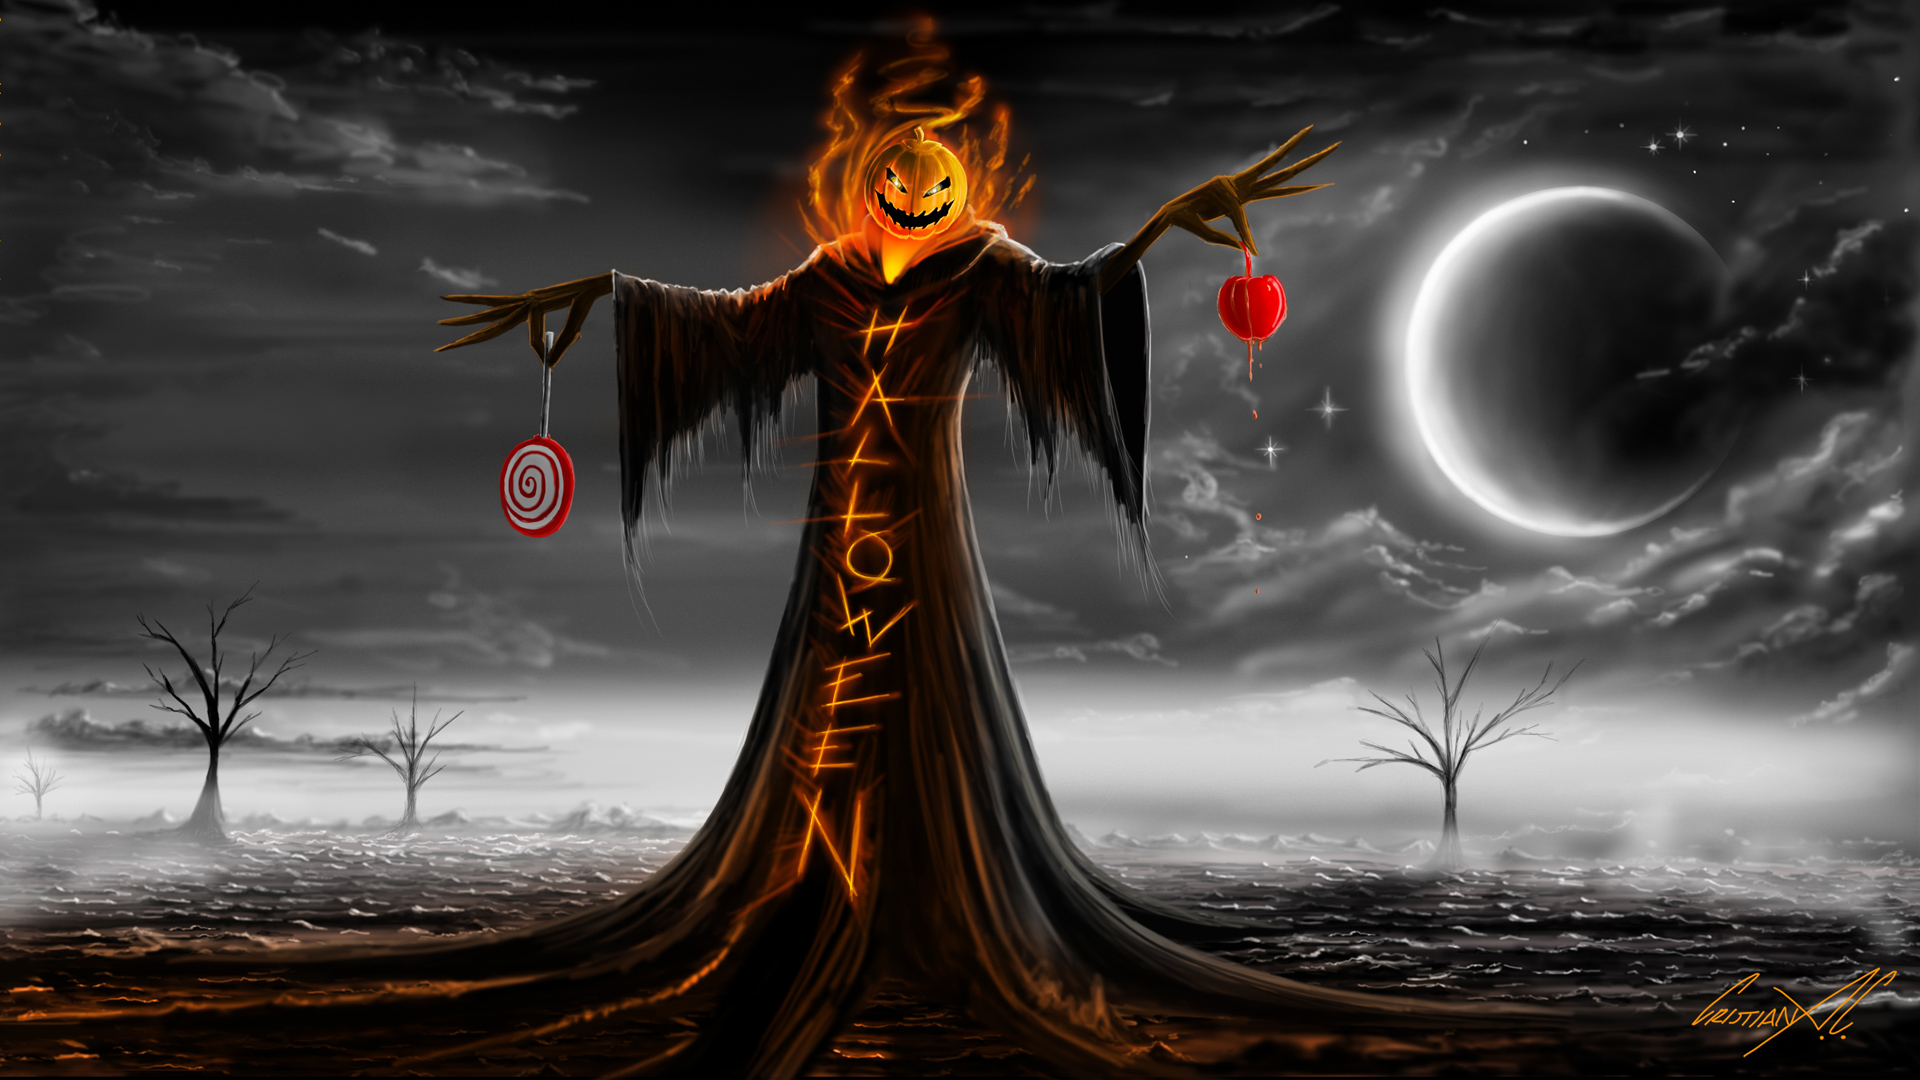 fantasy desktop wallpaper halloween 1920x1080 1920x1080